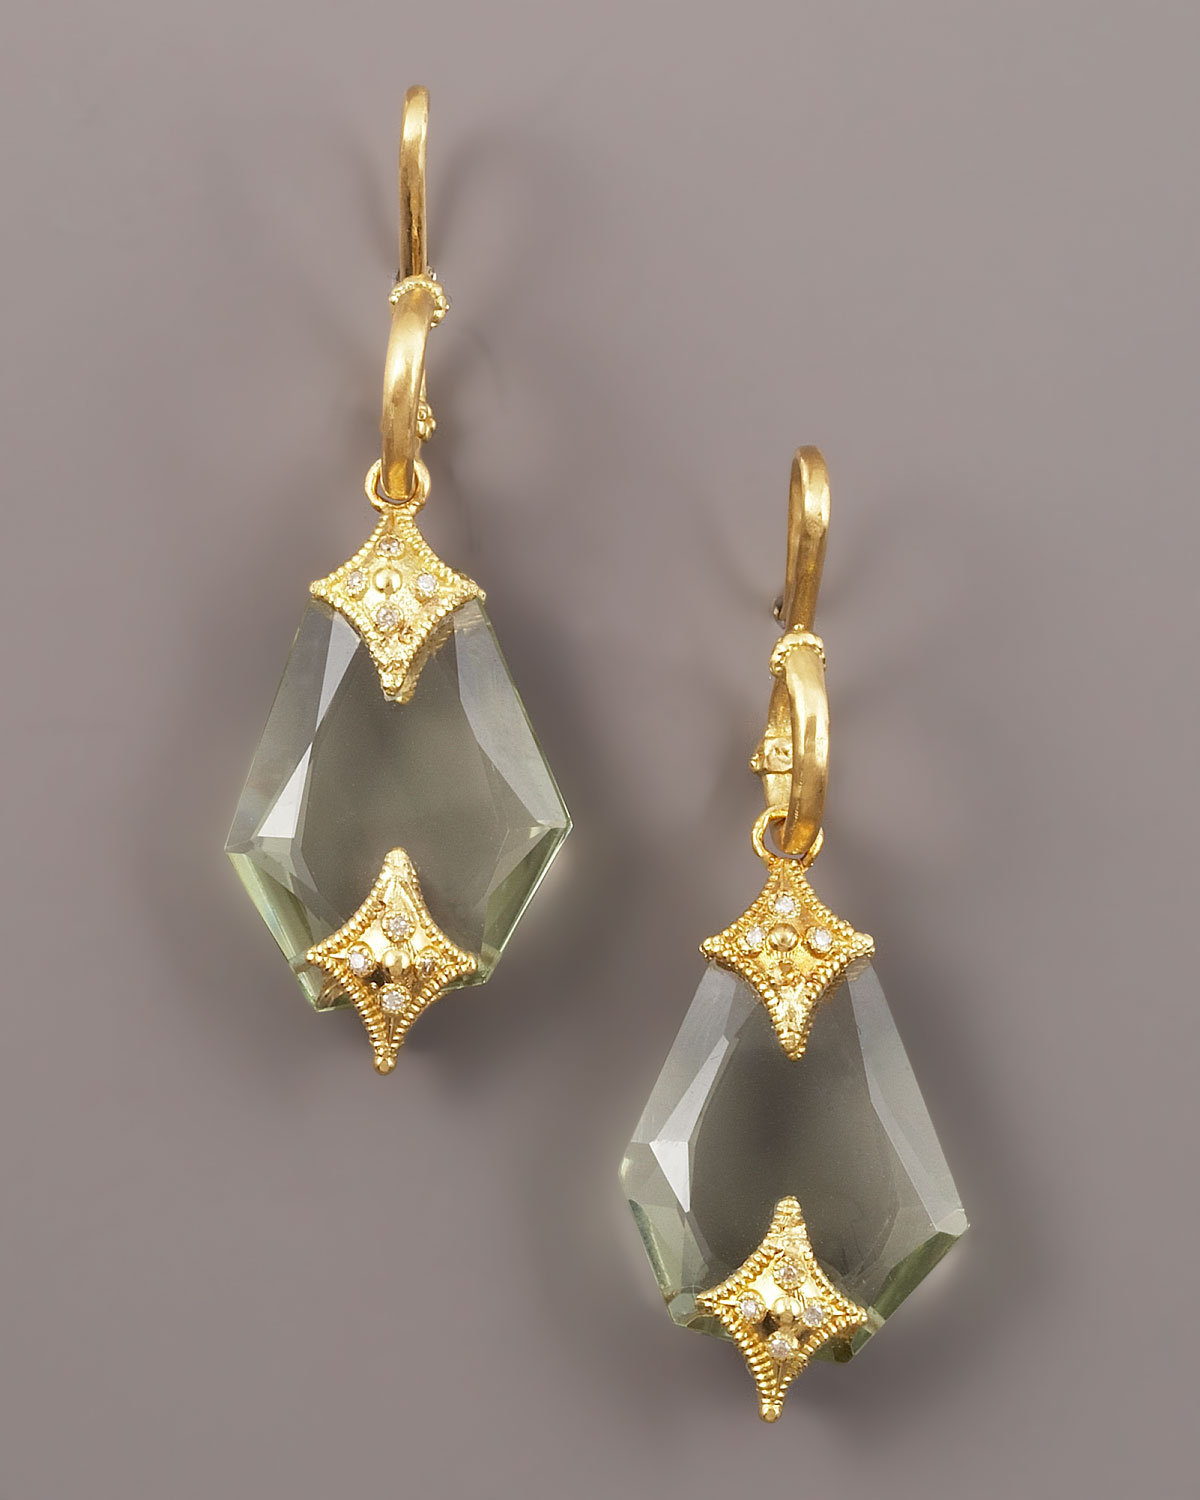 mercaldo earrings amethyst jewelry gold green michele